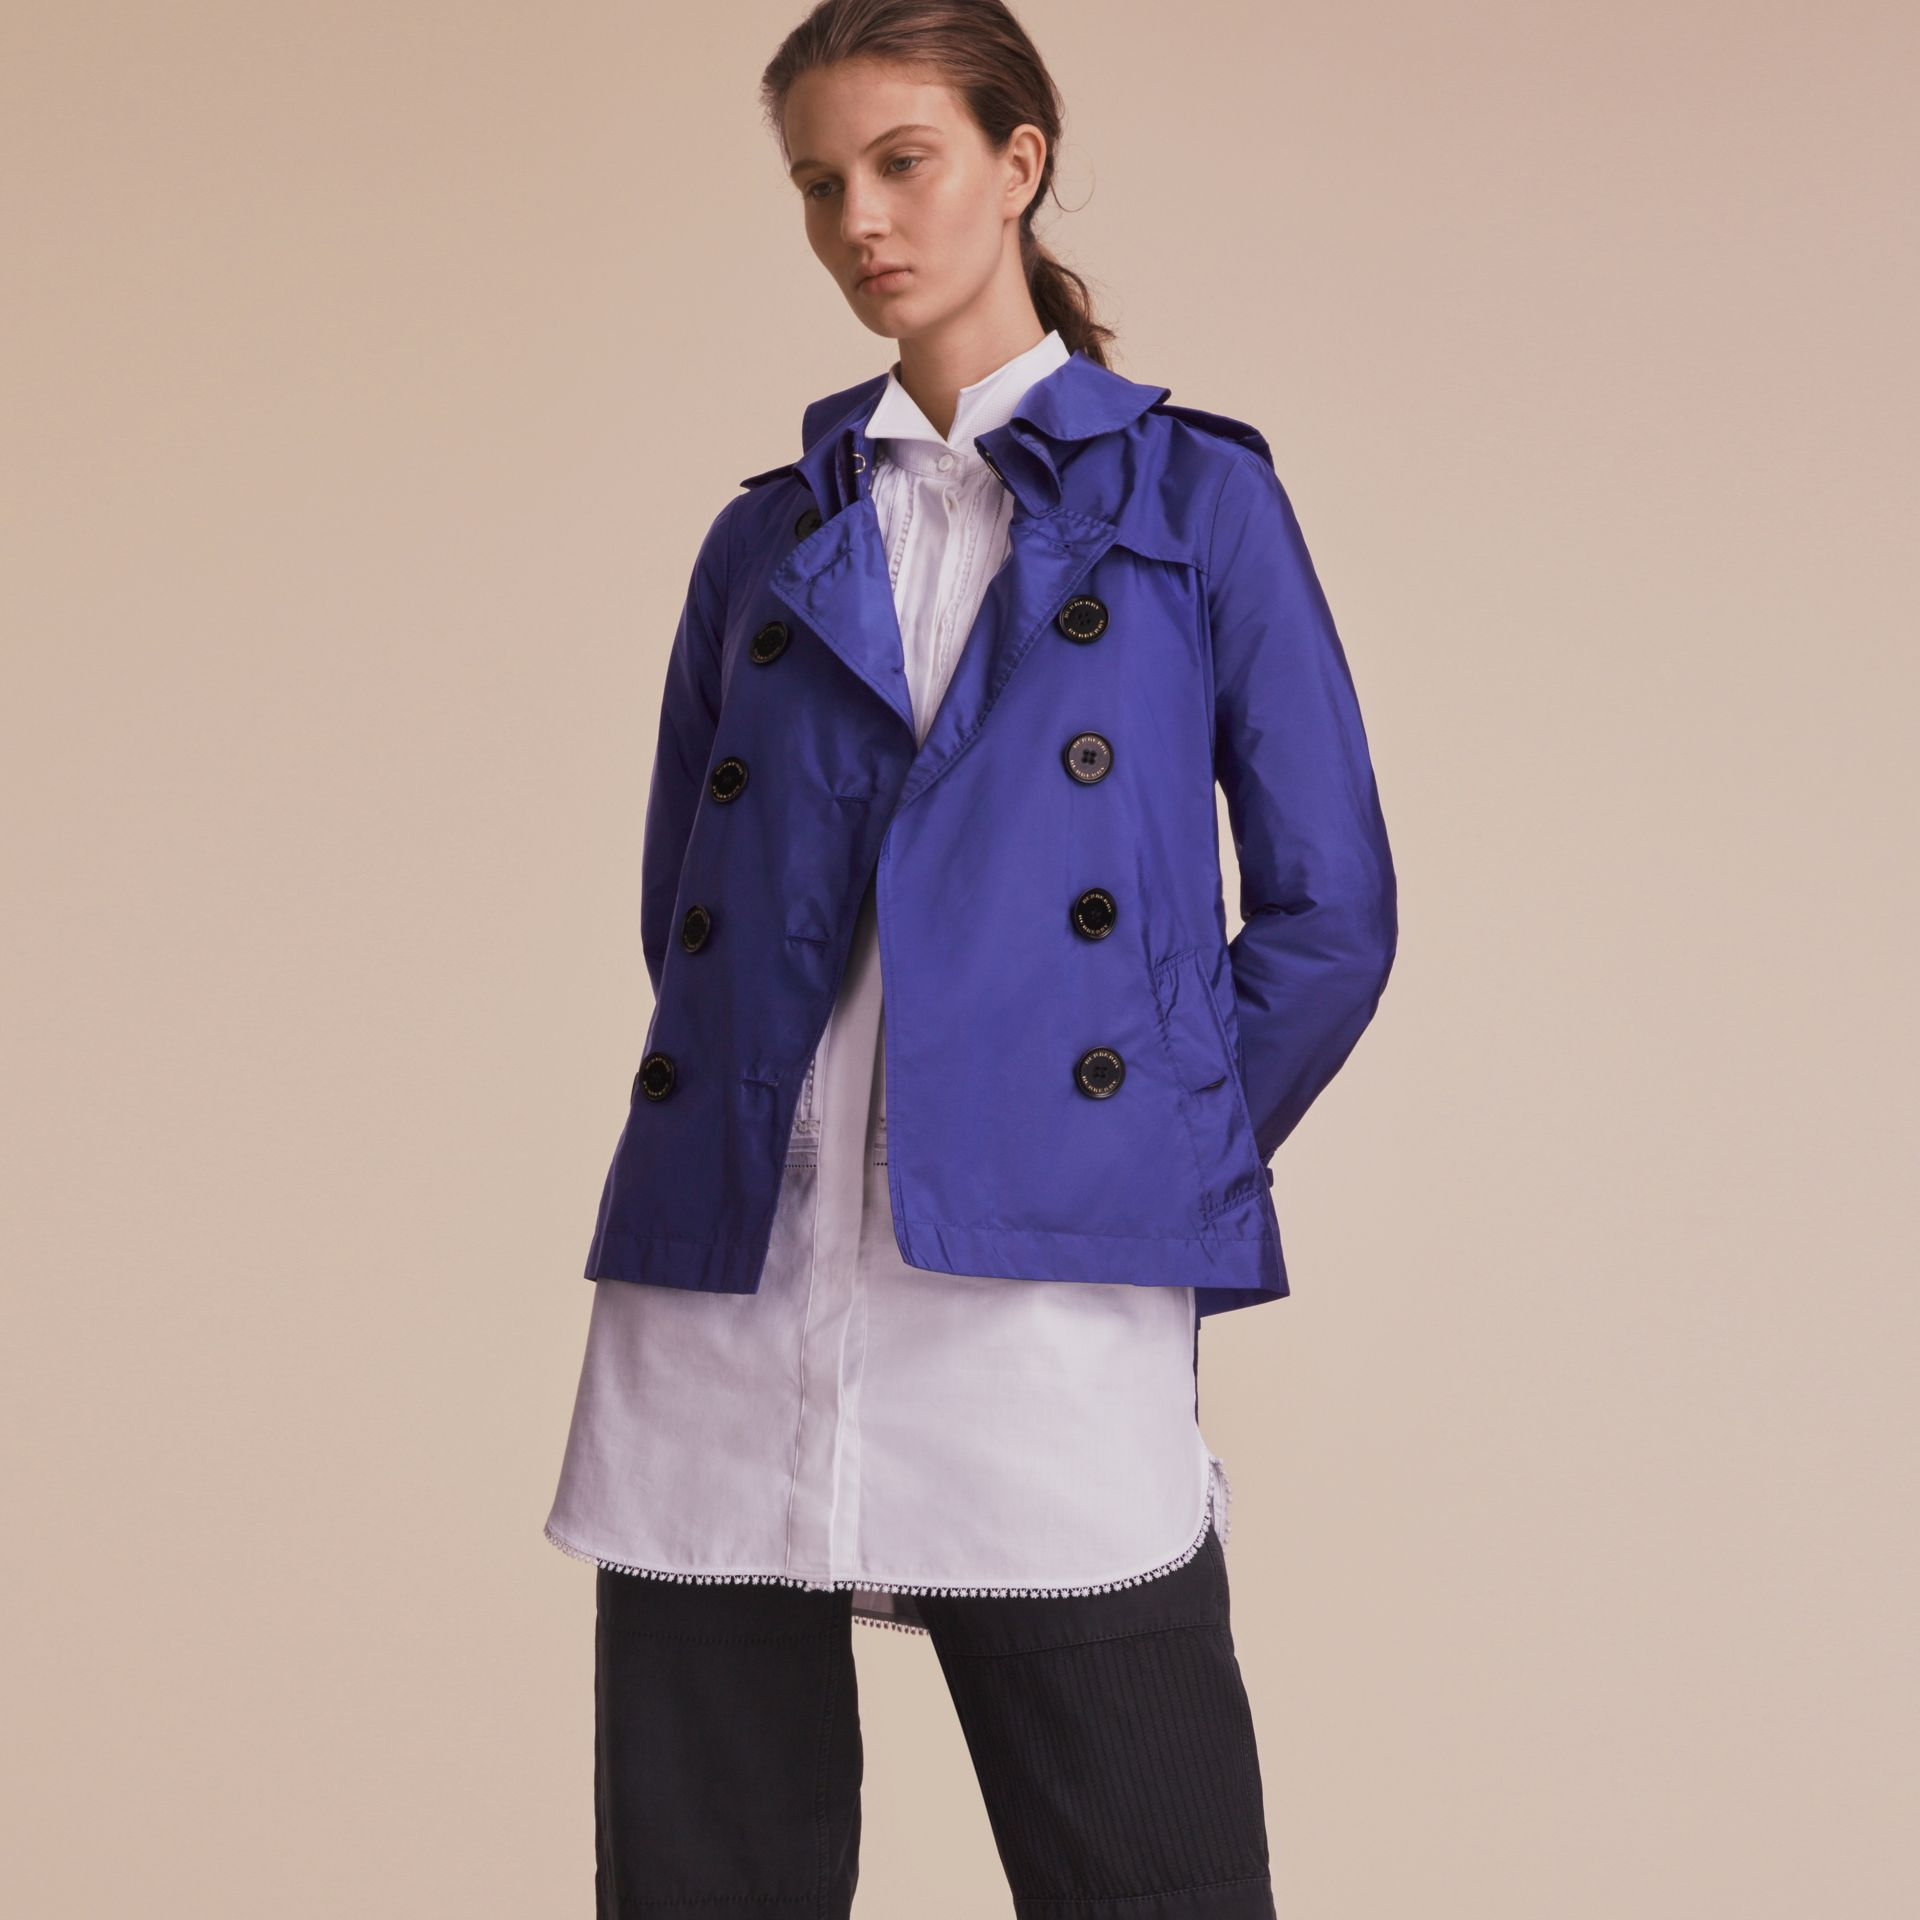 Showerproof Trench Coat in Sapphire Blue - Women | Burberry - gallery image 6